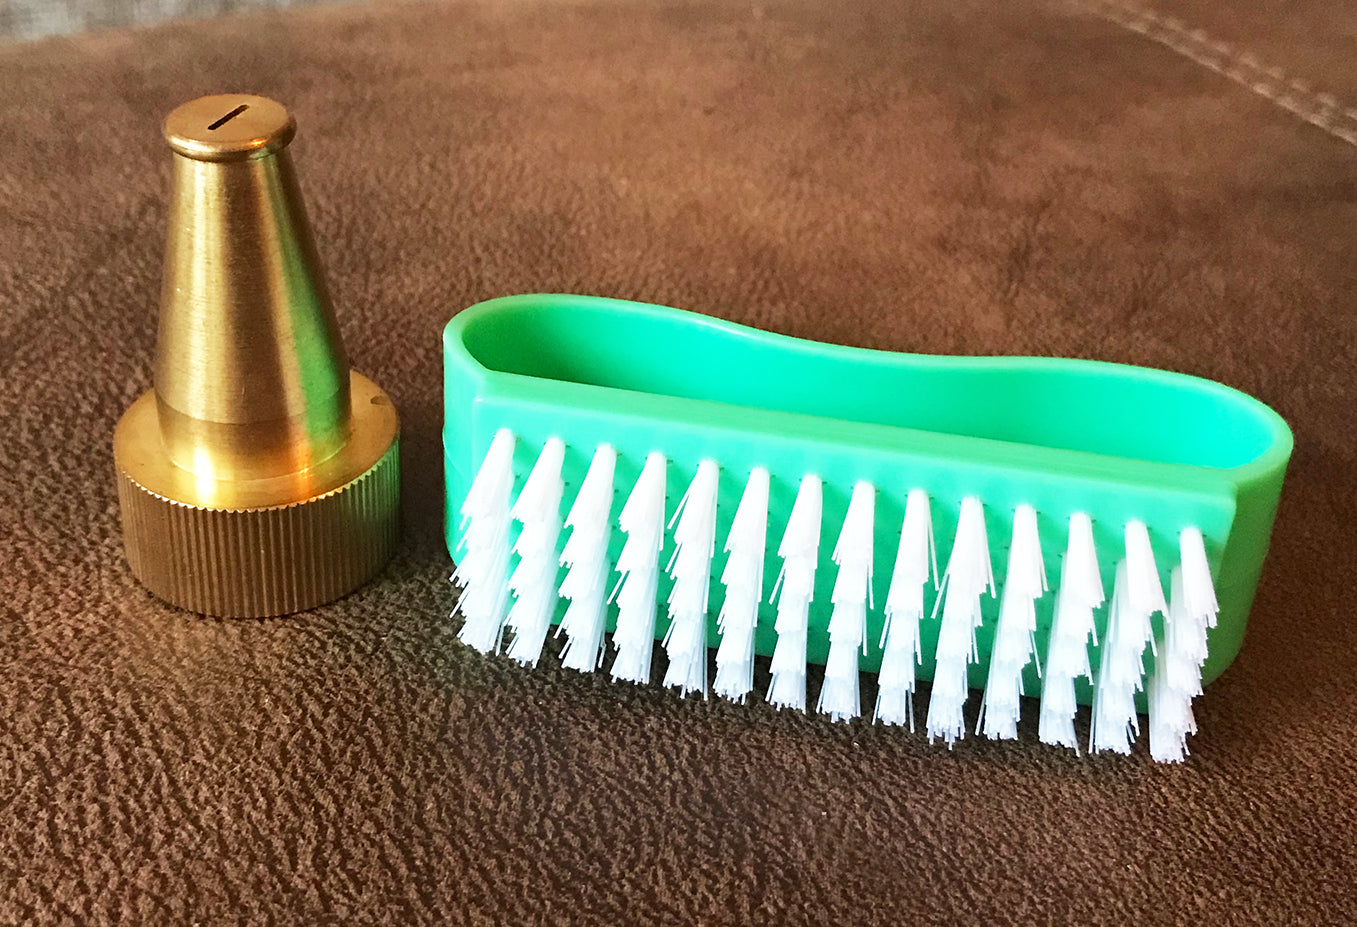 sandal cleaning tools nozzle and scrub brush